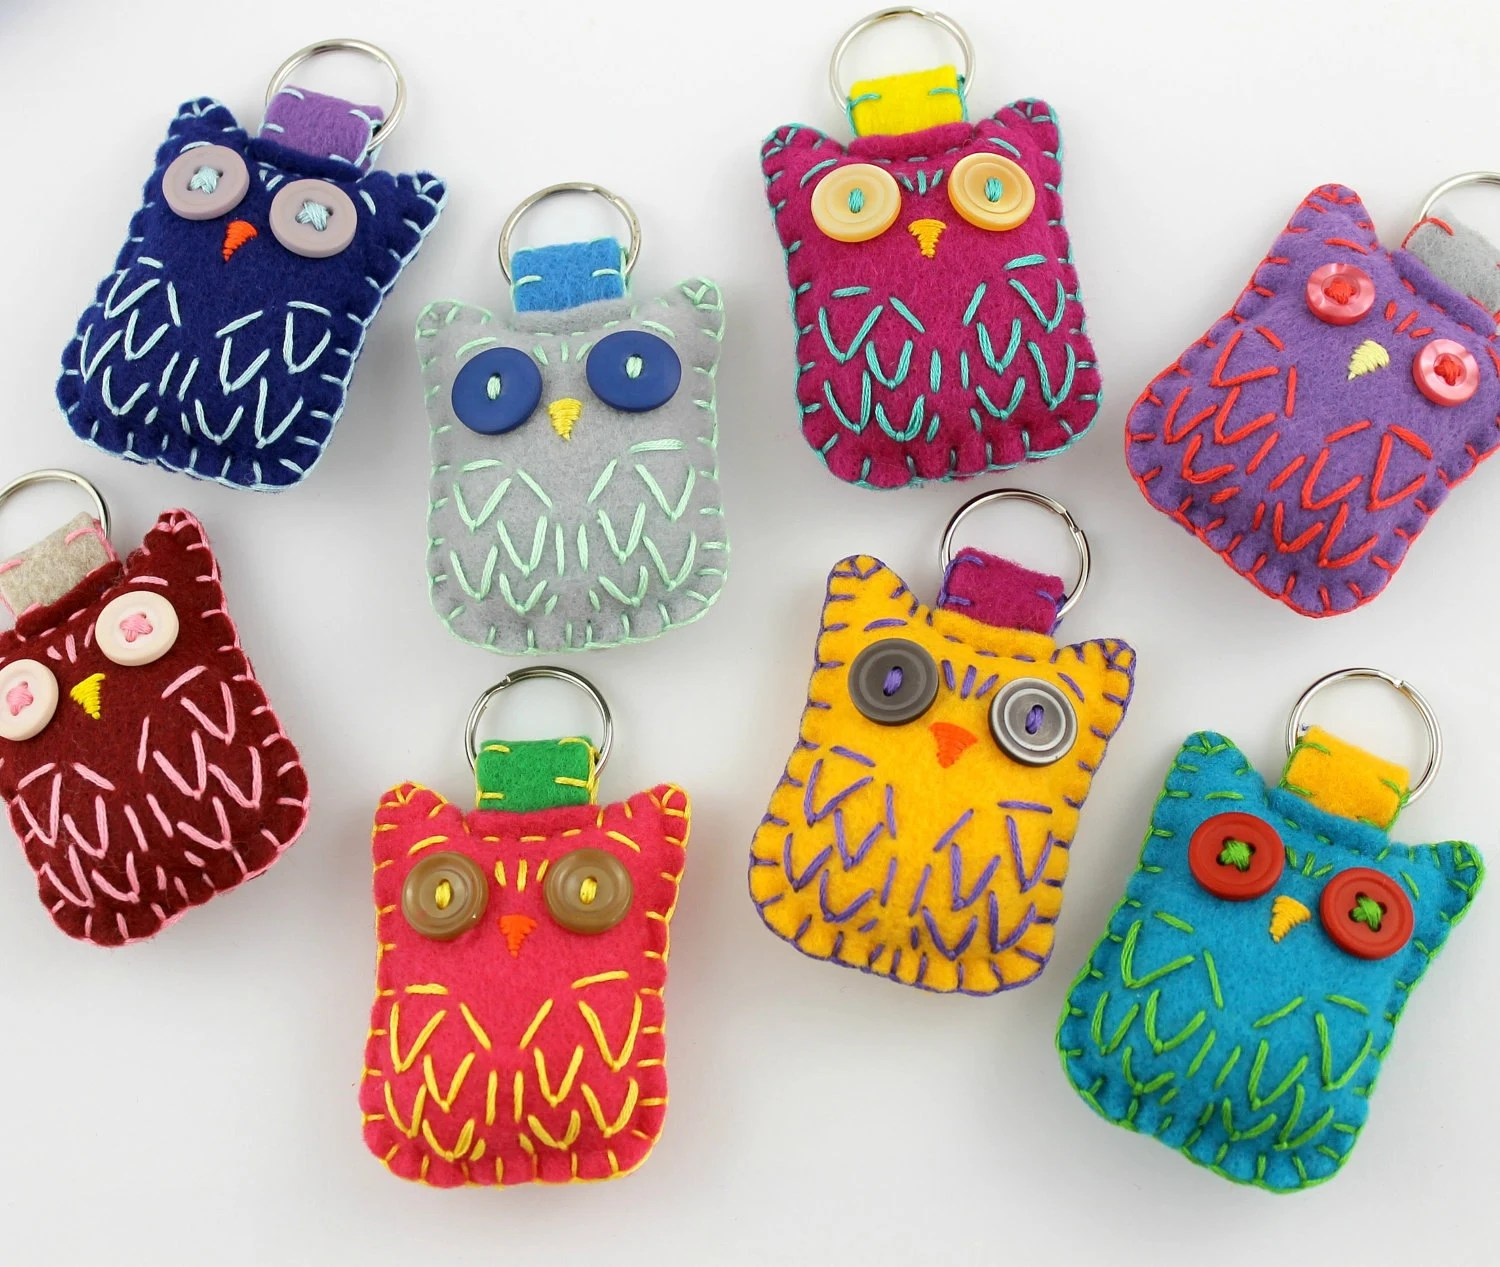 Wholesale Lot of 8 Eco Felt Owl Keychains Embroidery Cute Felt Party Favors